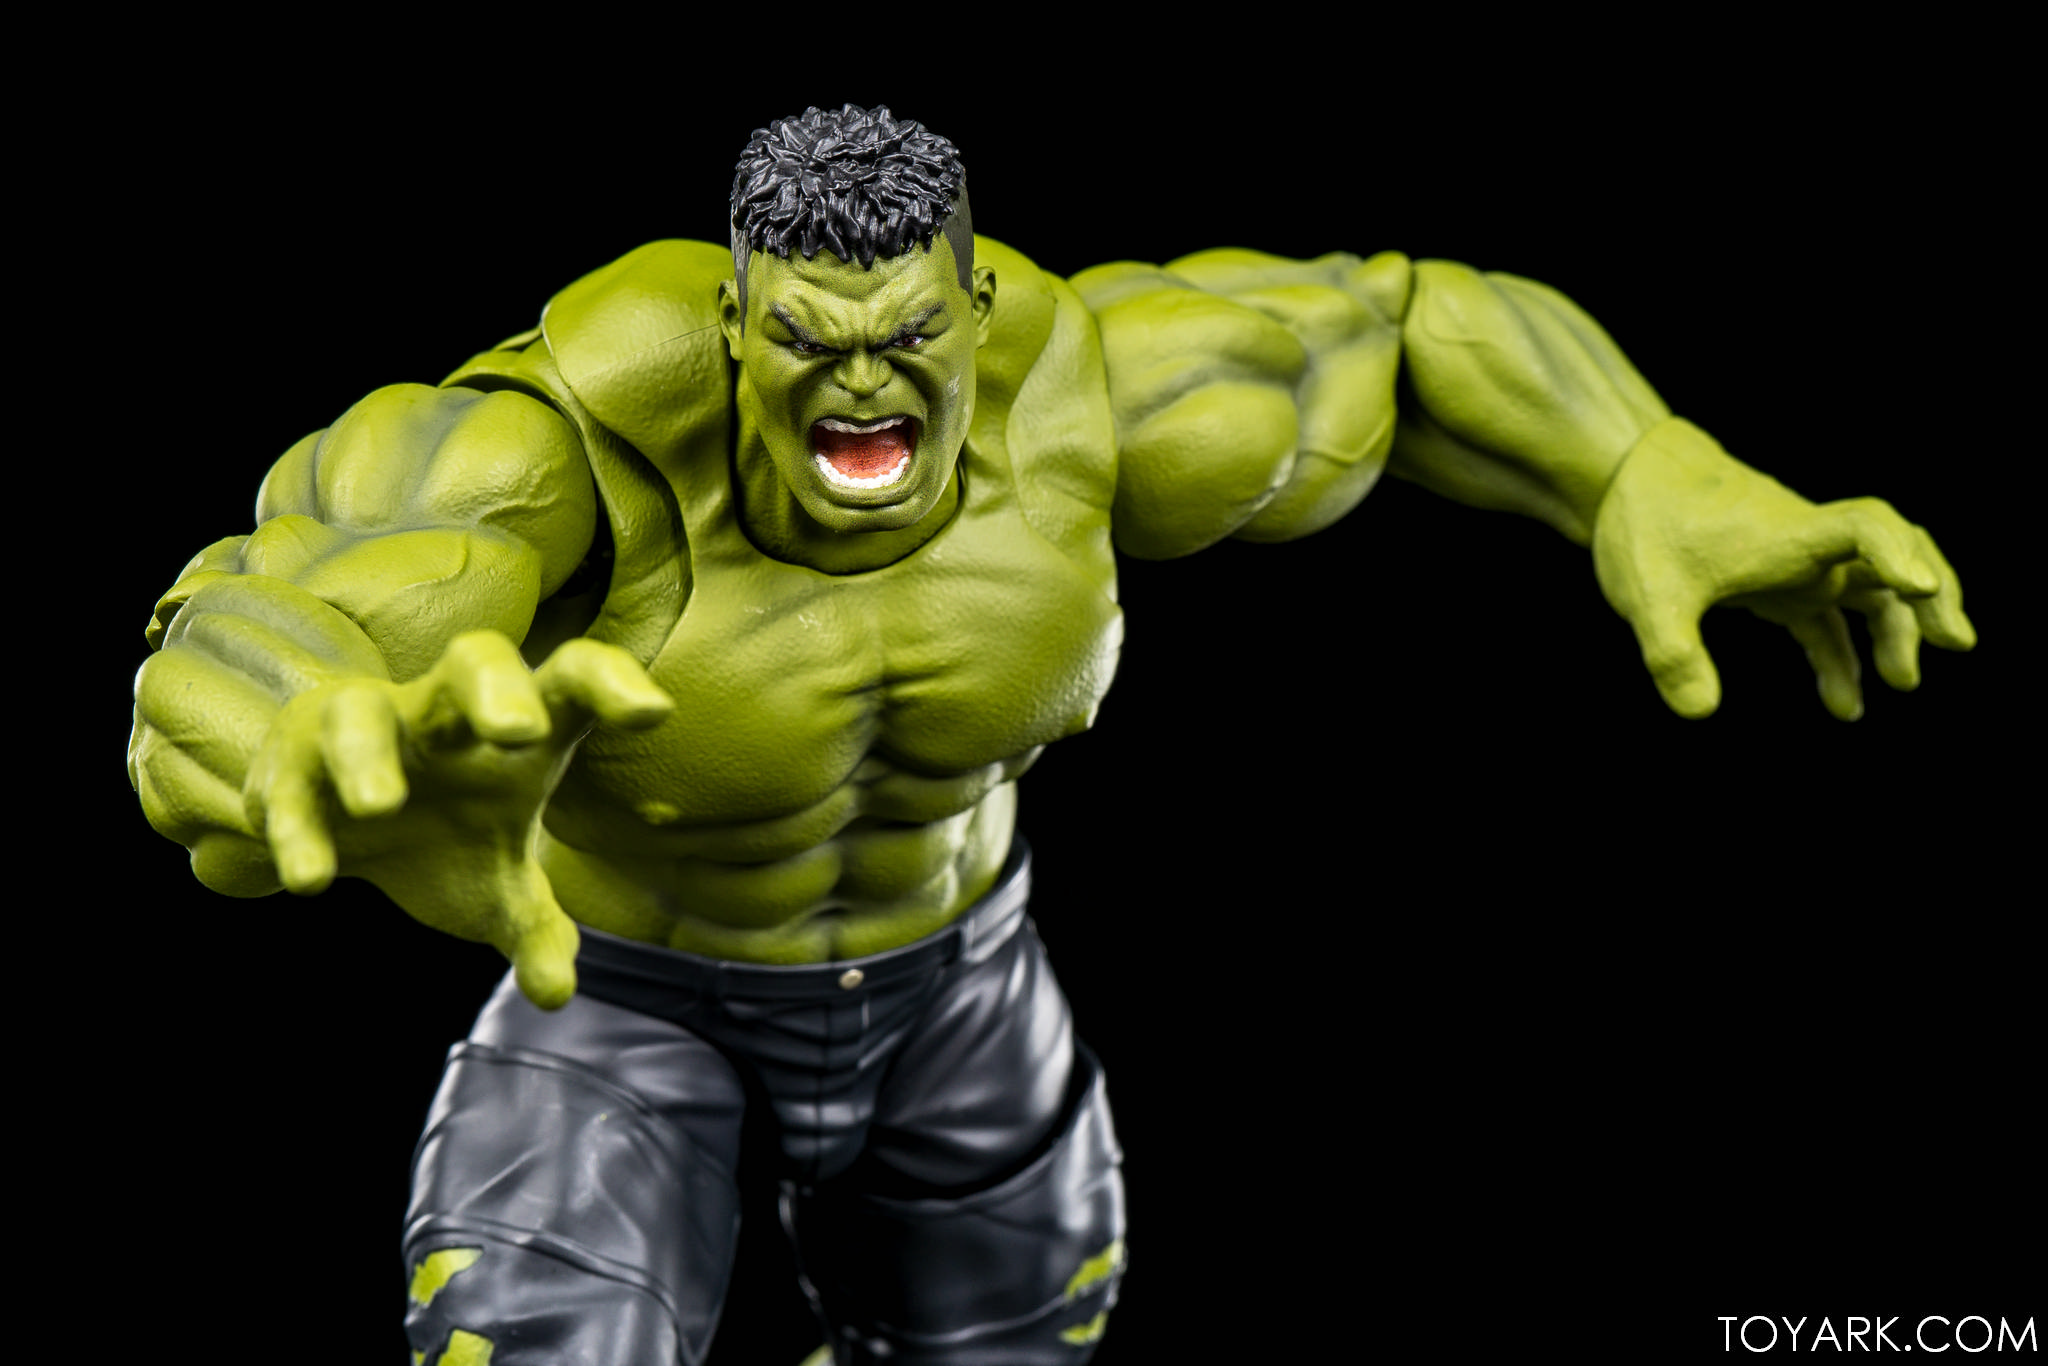 It's just a photo of Unforgettable A Picture of the Hulk